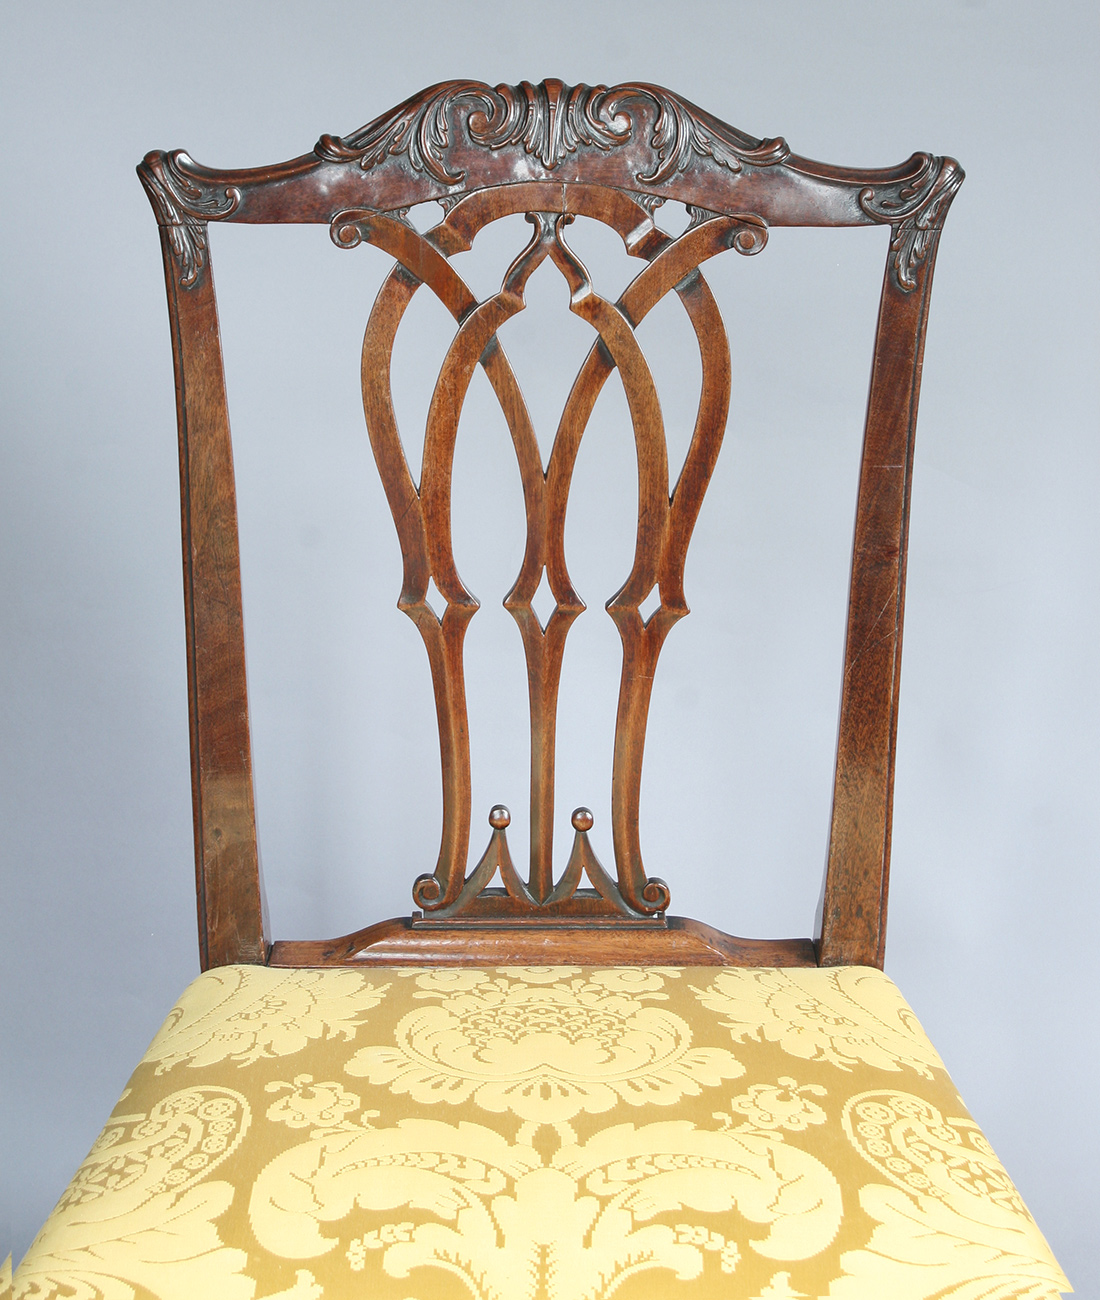 Chippendale chair after fabrication